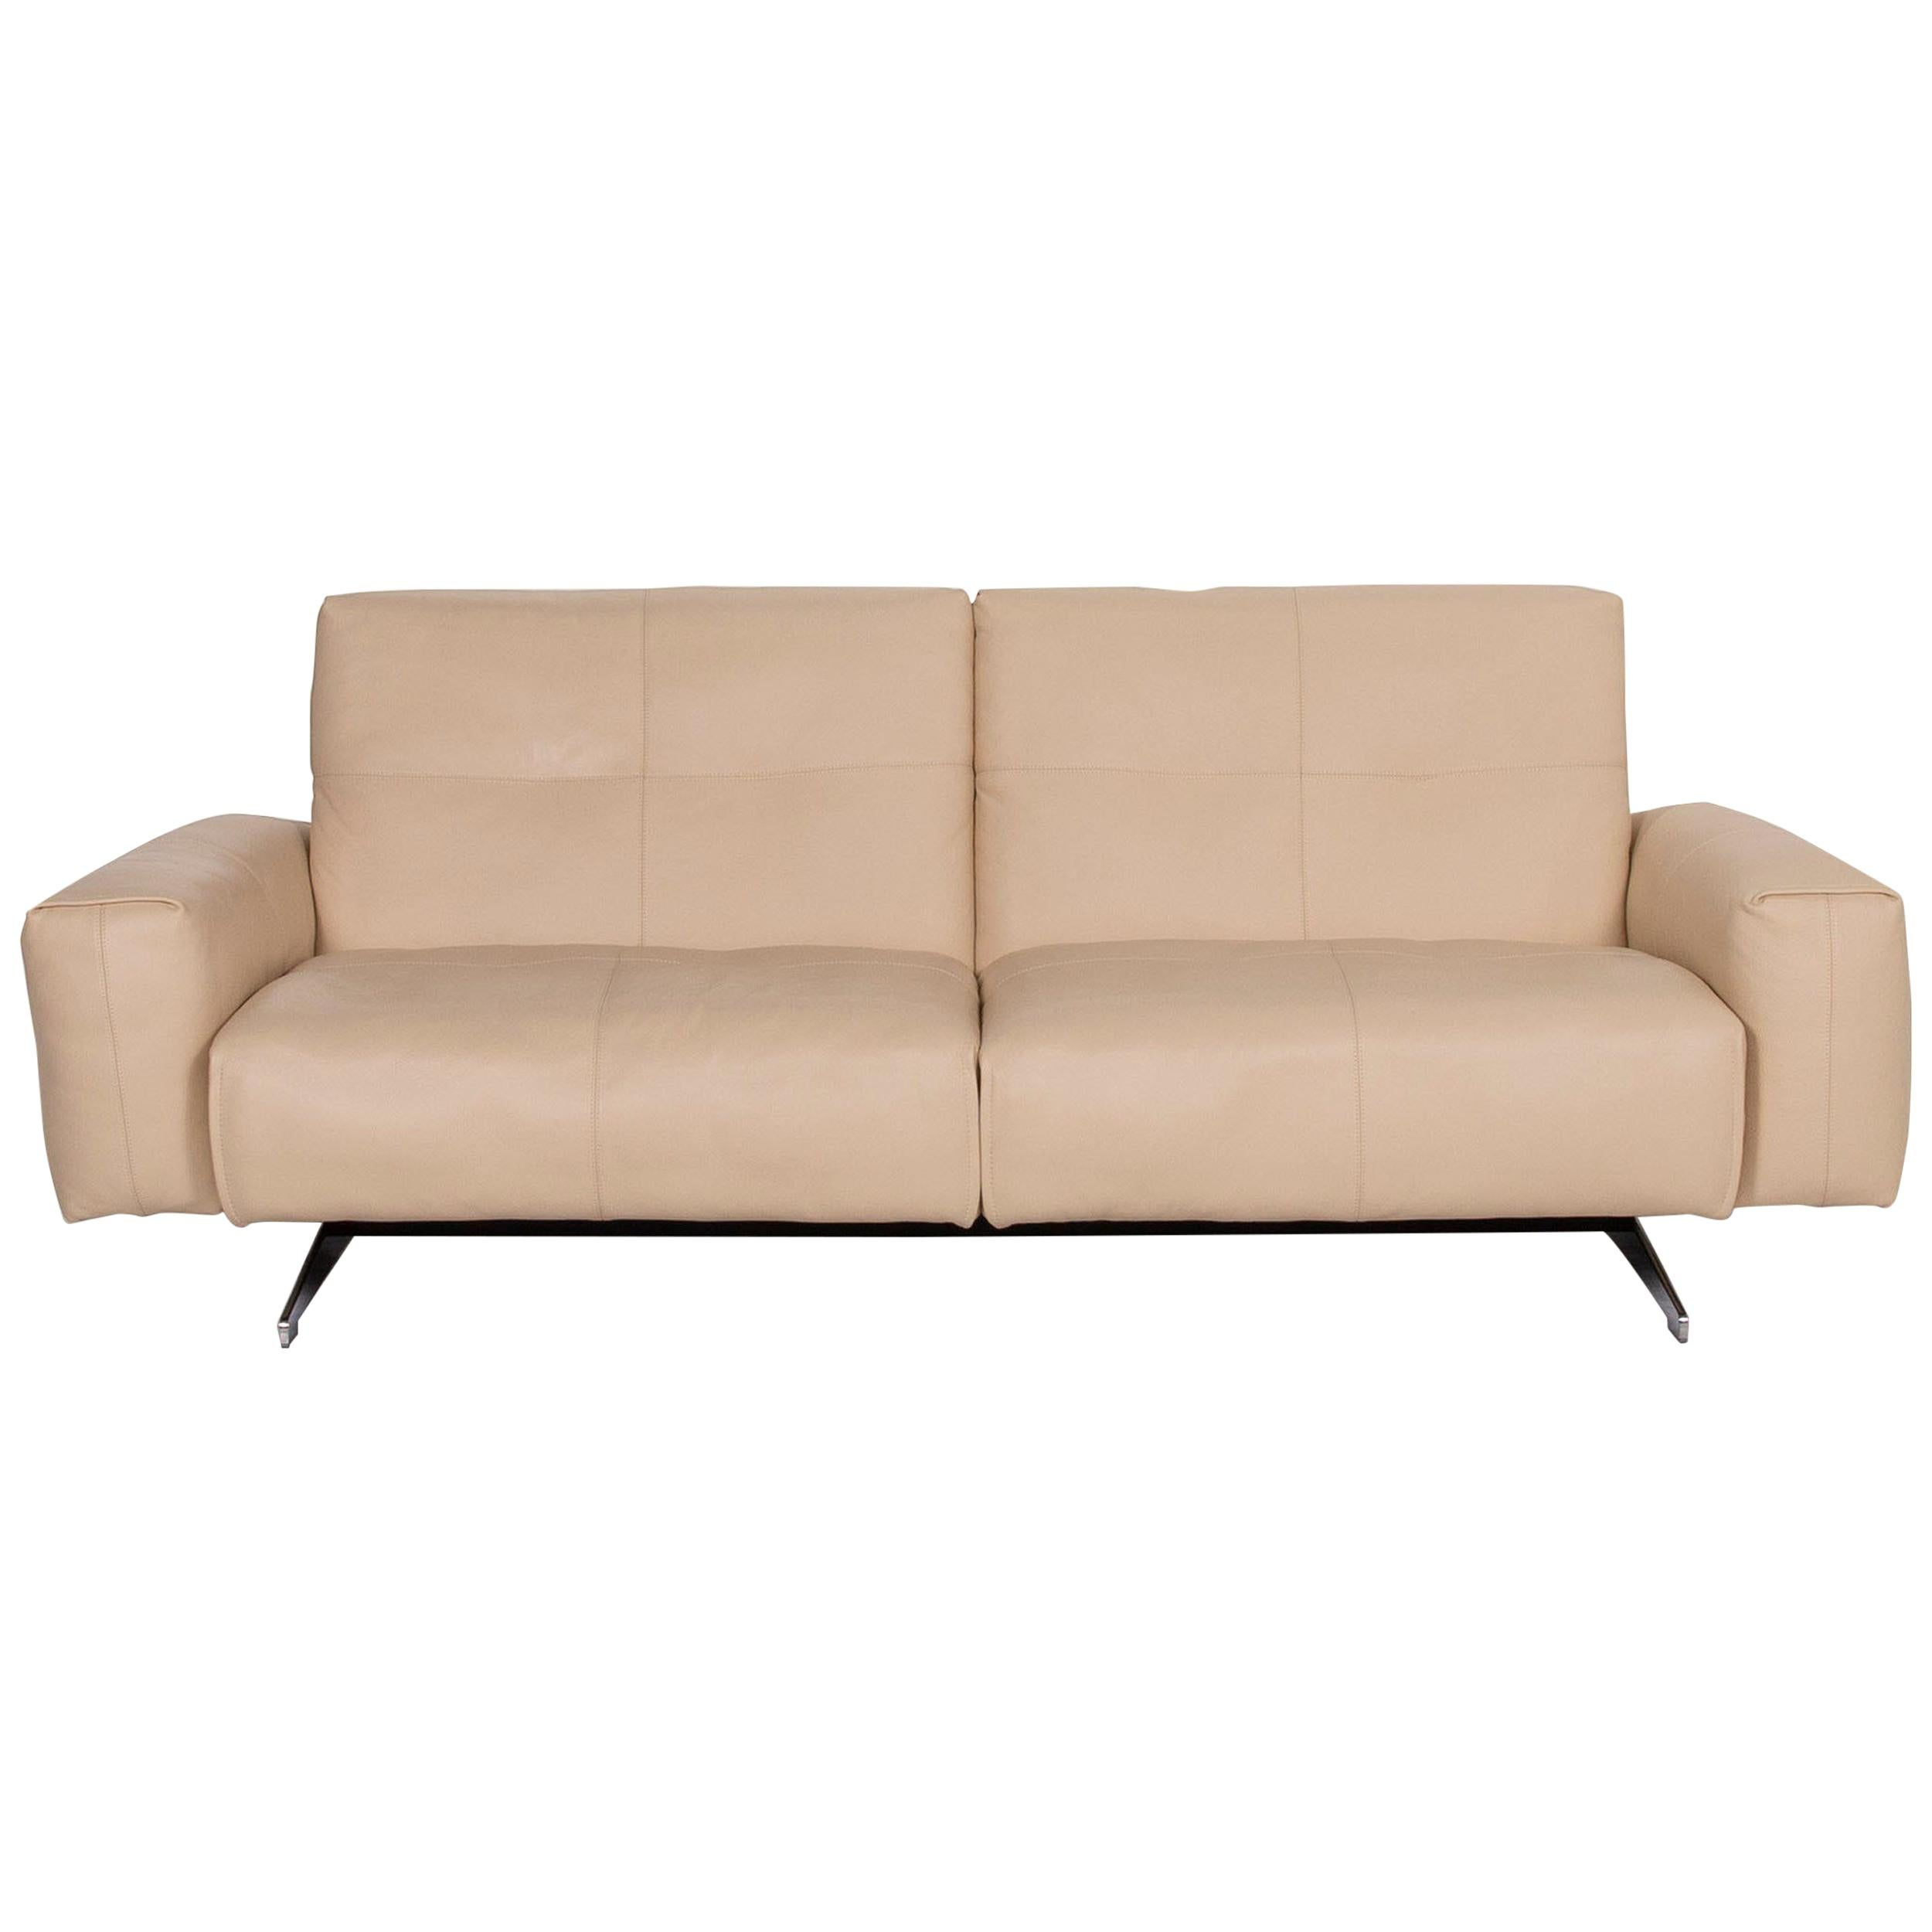 Rolf Benz 50 Leather Sofa Cream Two-Seat